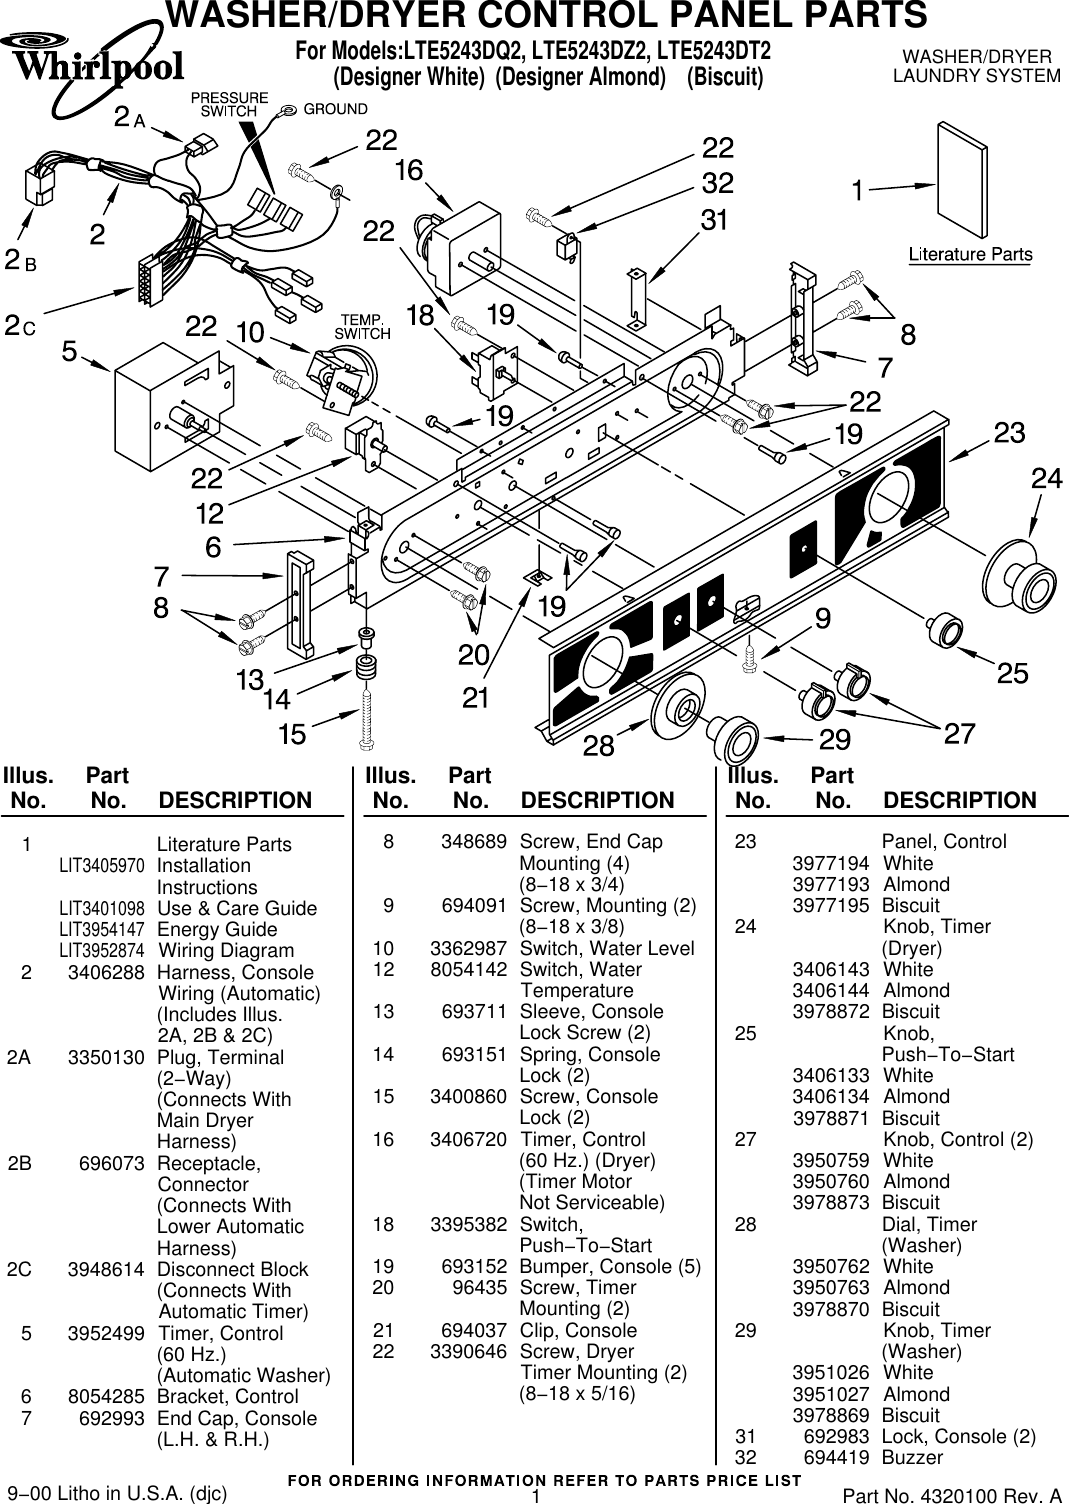 Whirlpool Lte5243dq2 Users Manual 661600 Wiring Schematic